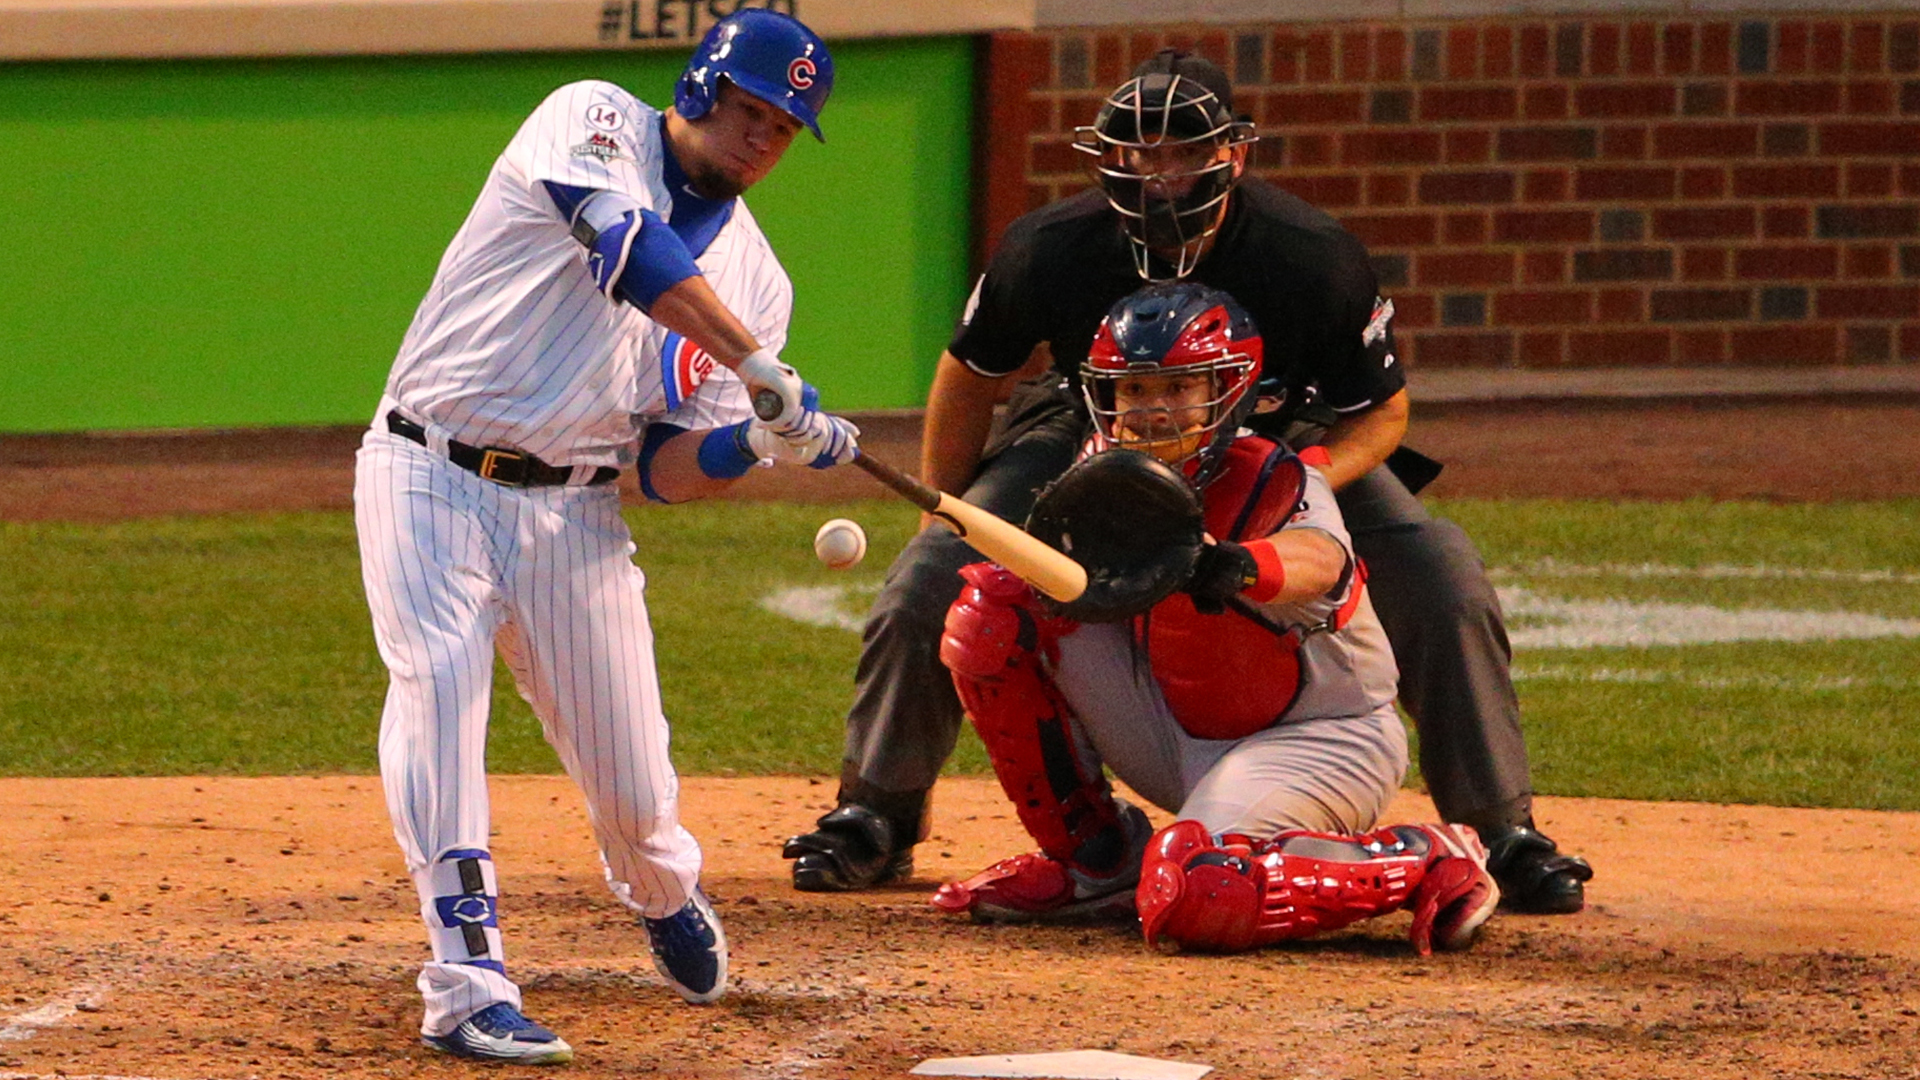 OTD: Schwarber lands one on the scoreboard and Cubs advance to NLCS